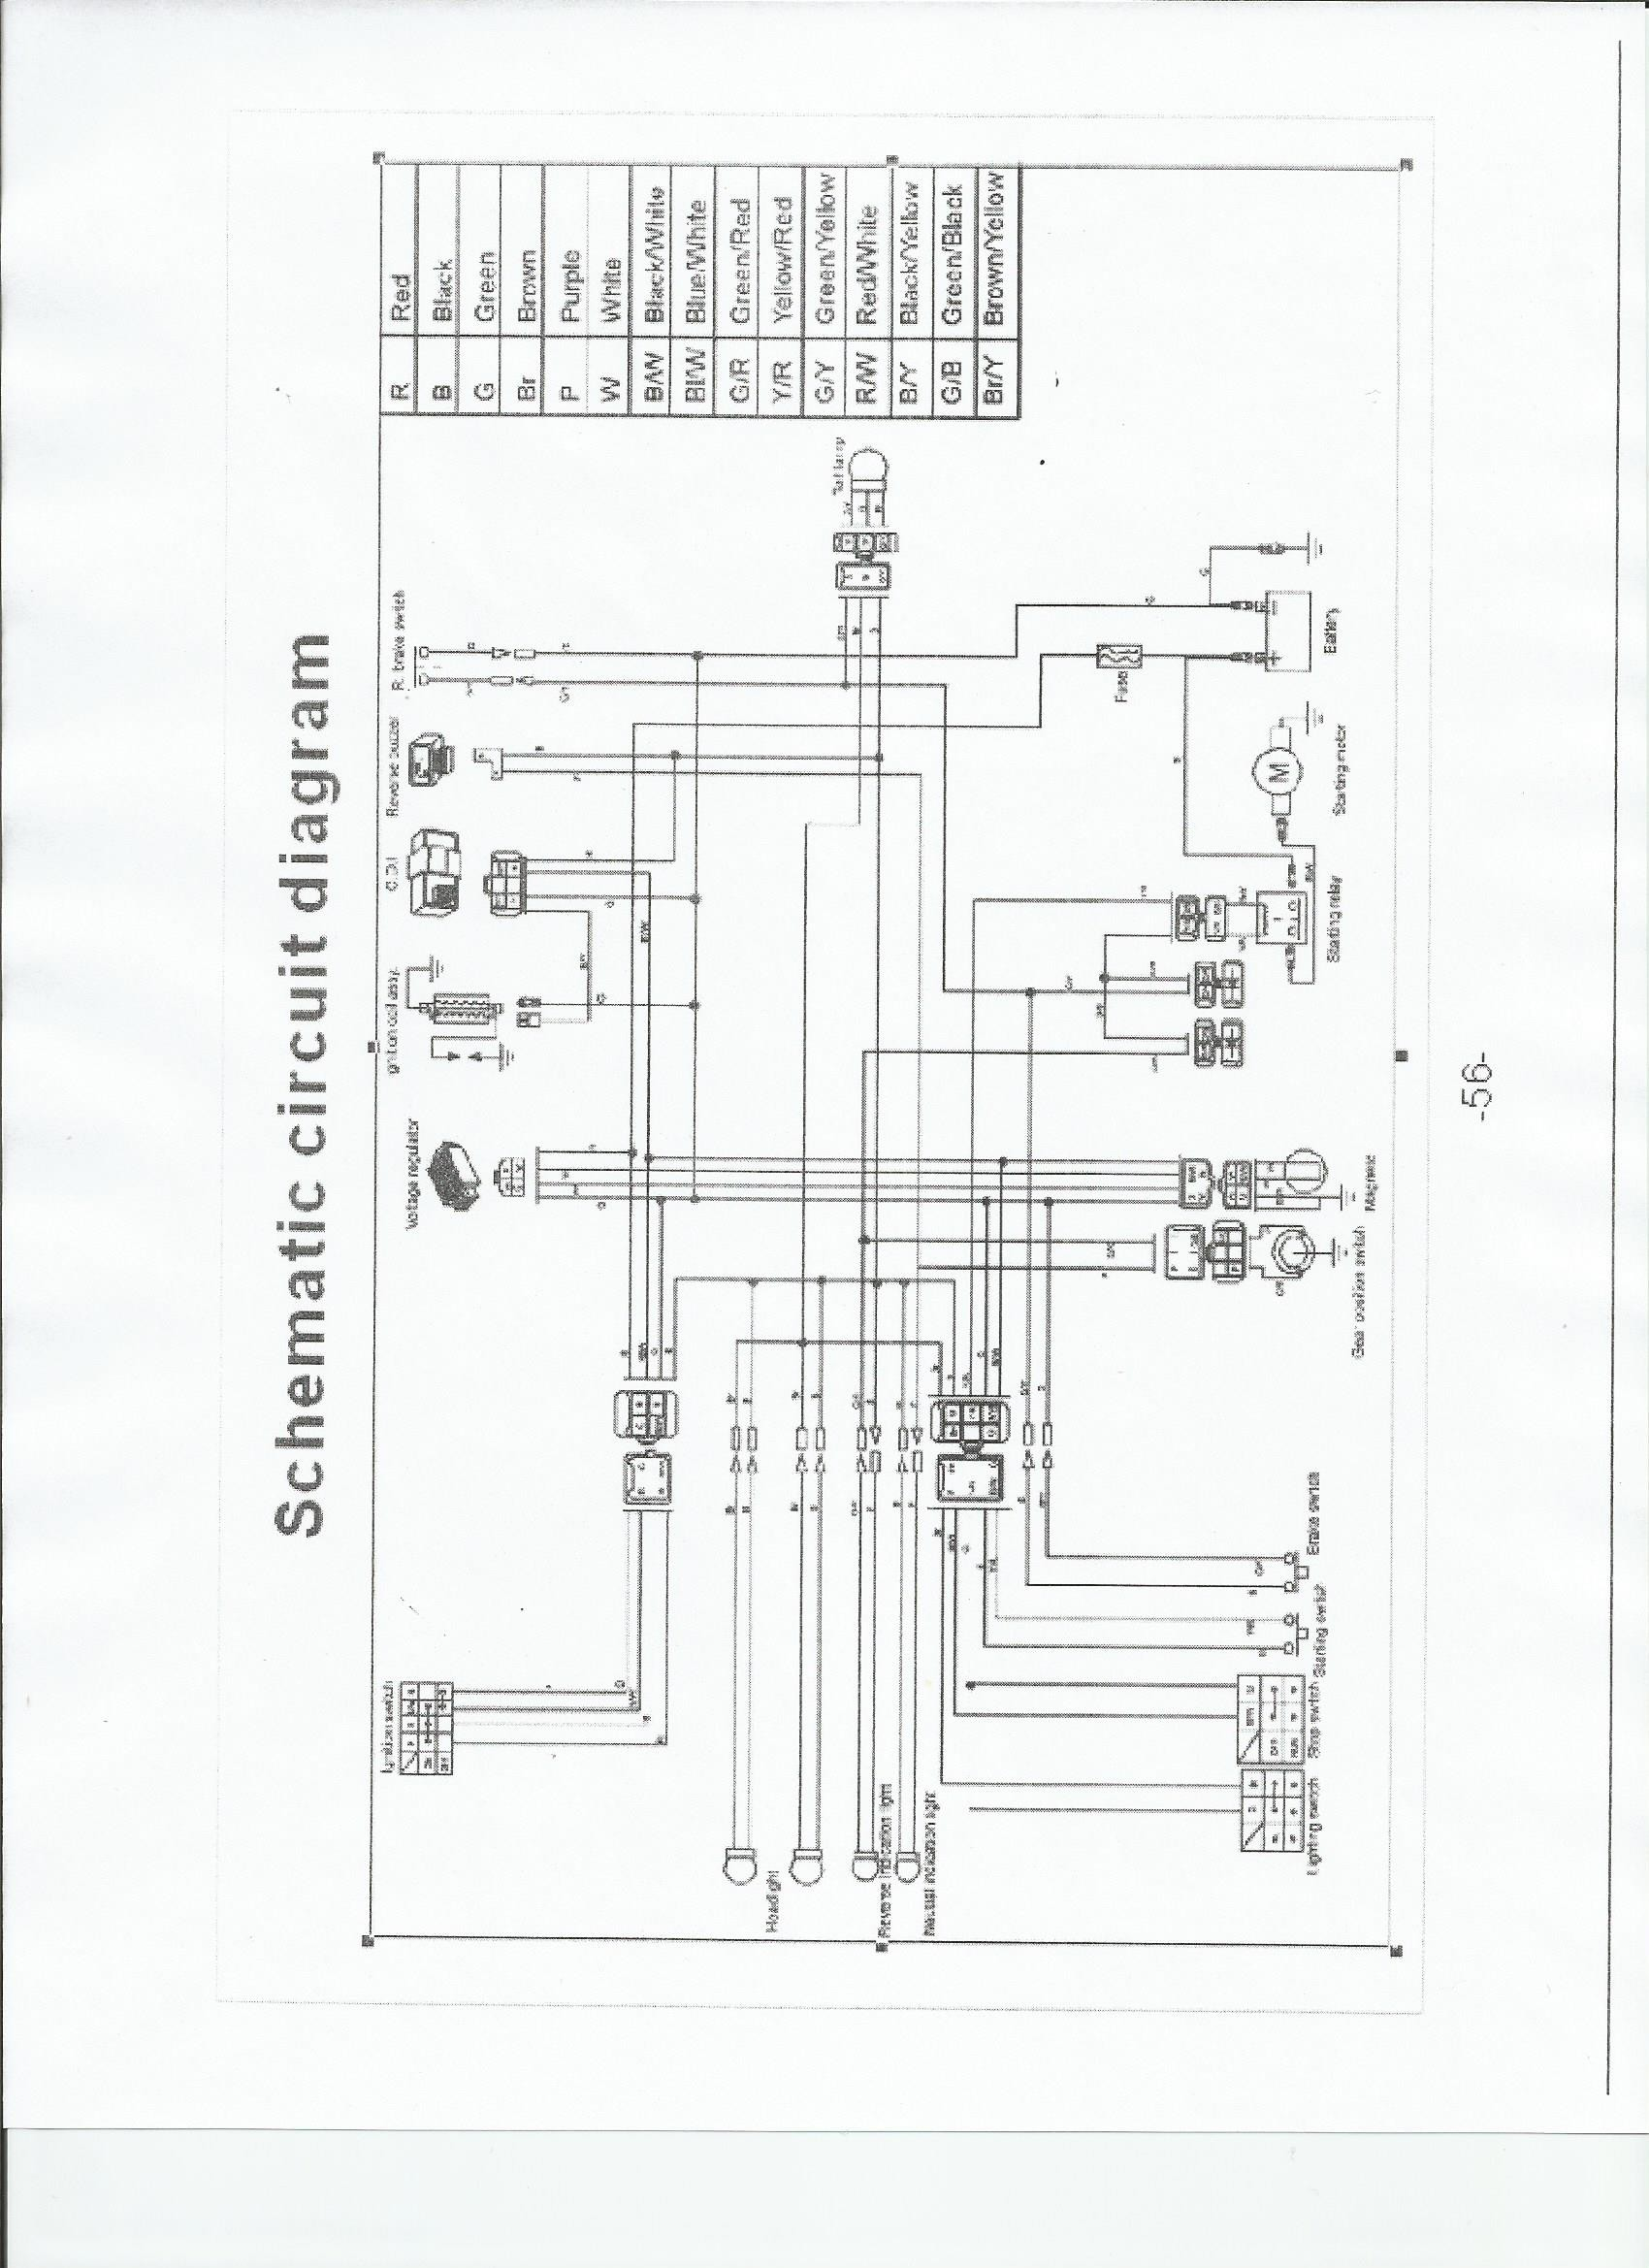 250cc chinese atv wiring diagram also electric bike controller